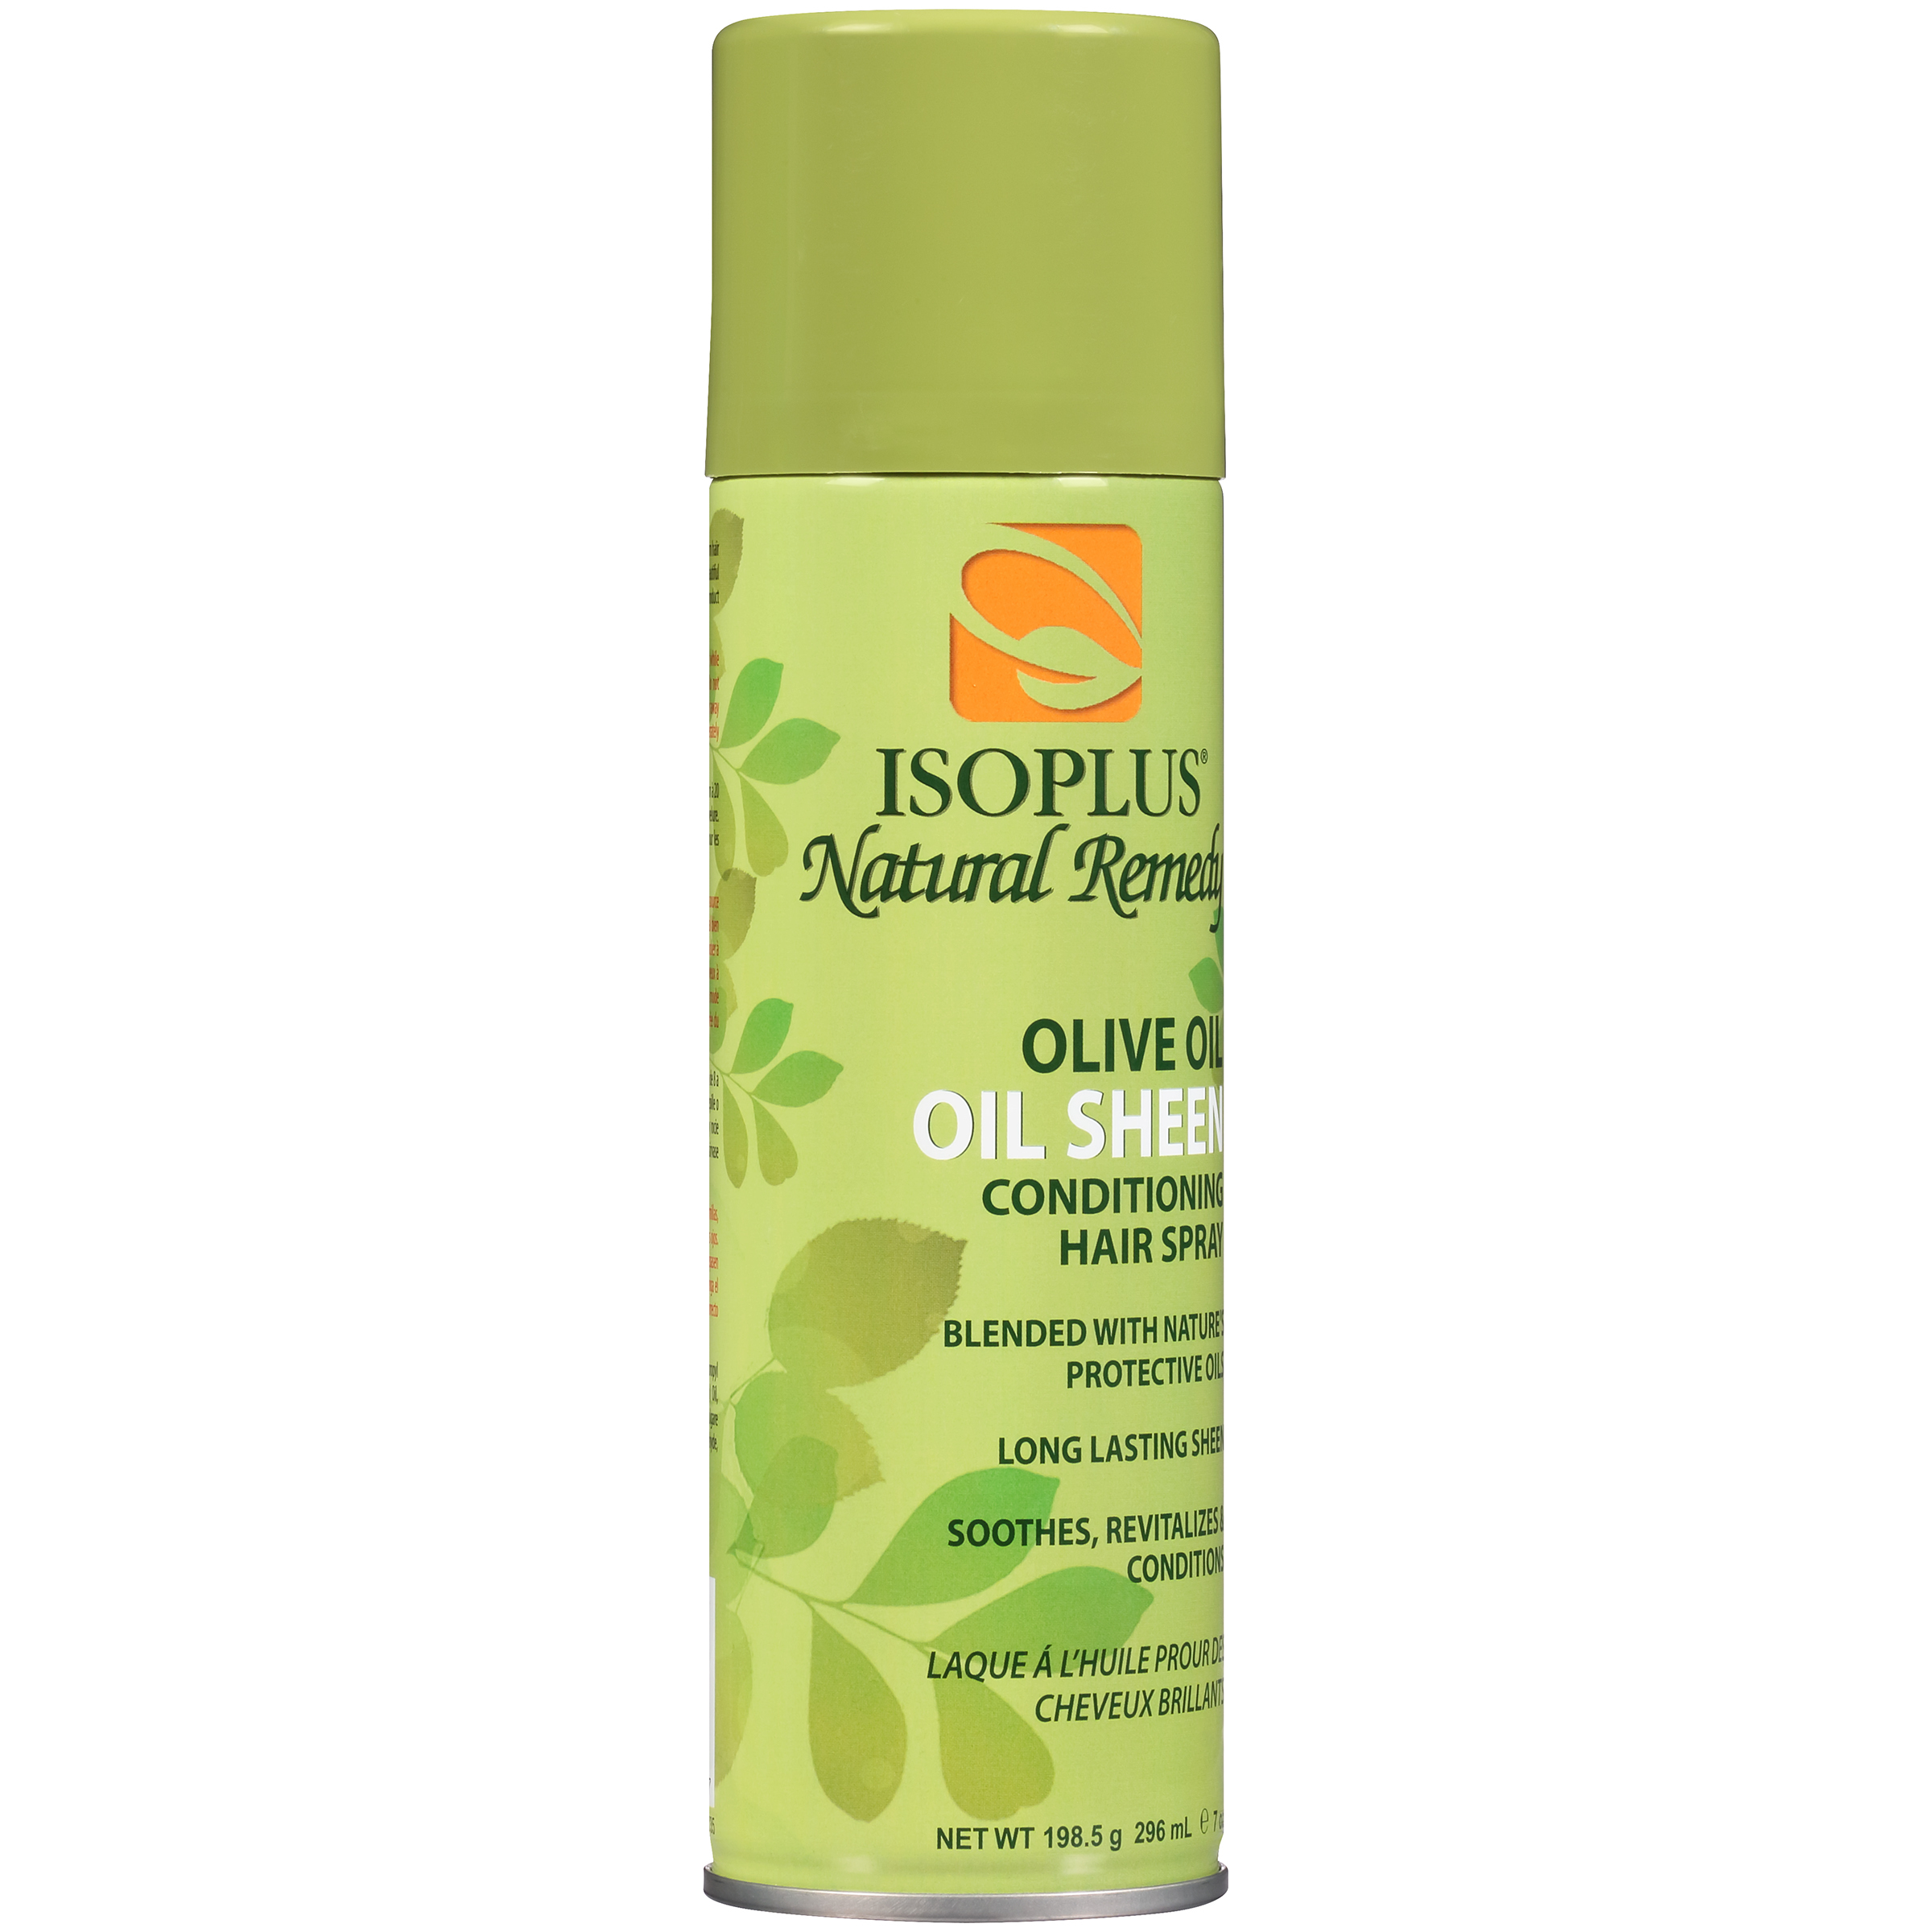 Isoplus® Natural Remedy Olive Oil Oil Sheen Conditioning Hair Spray 7 oz. Aerosol Can